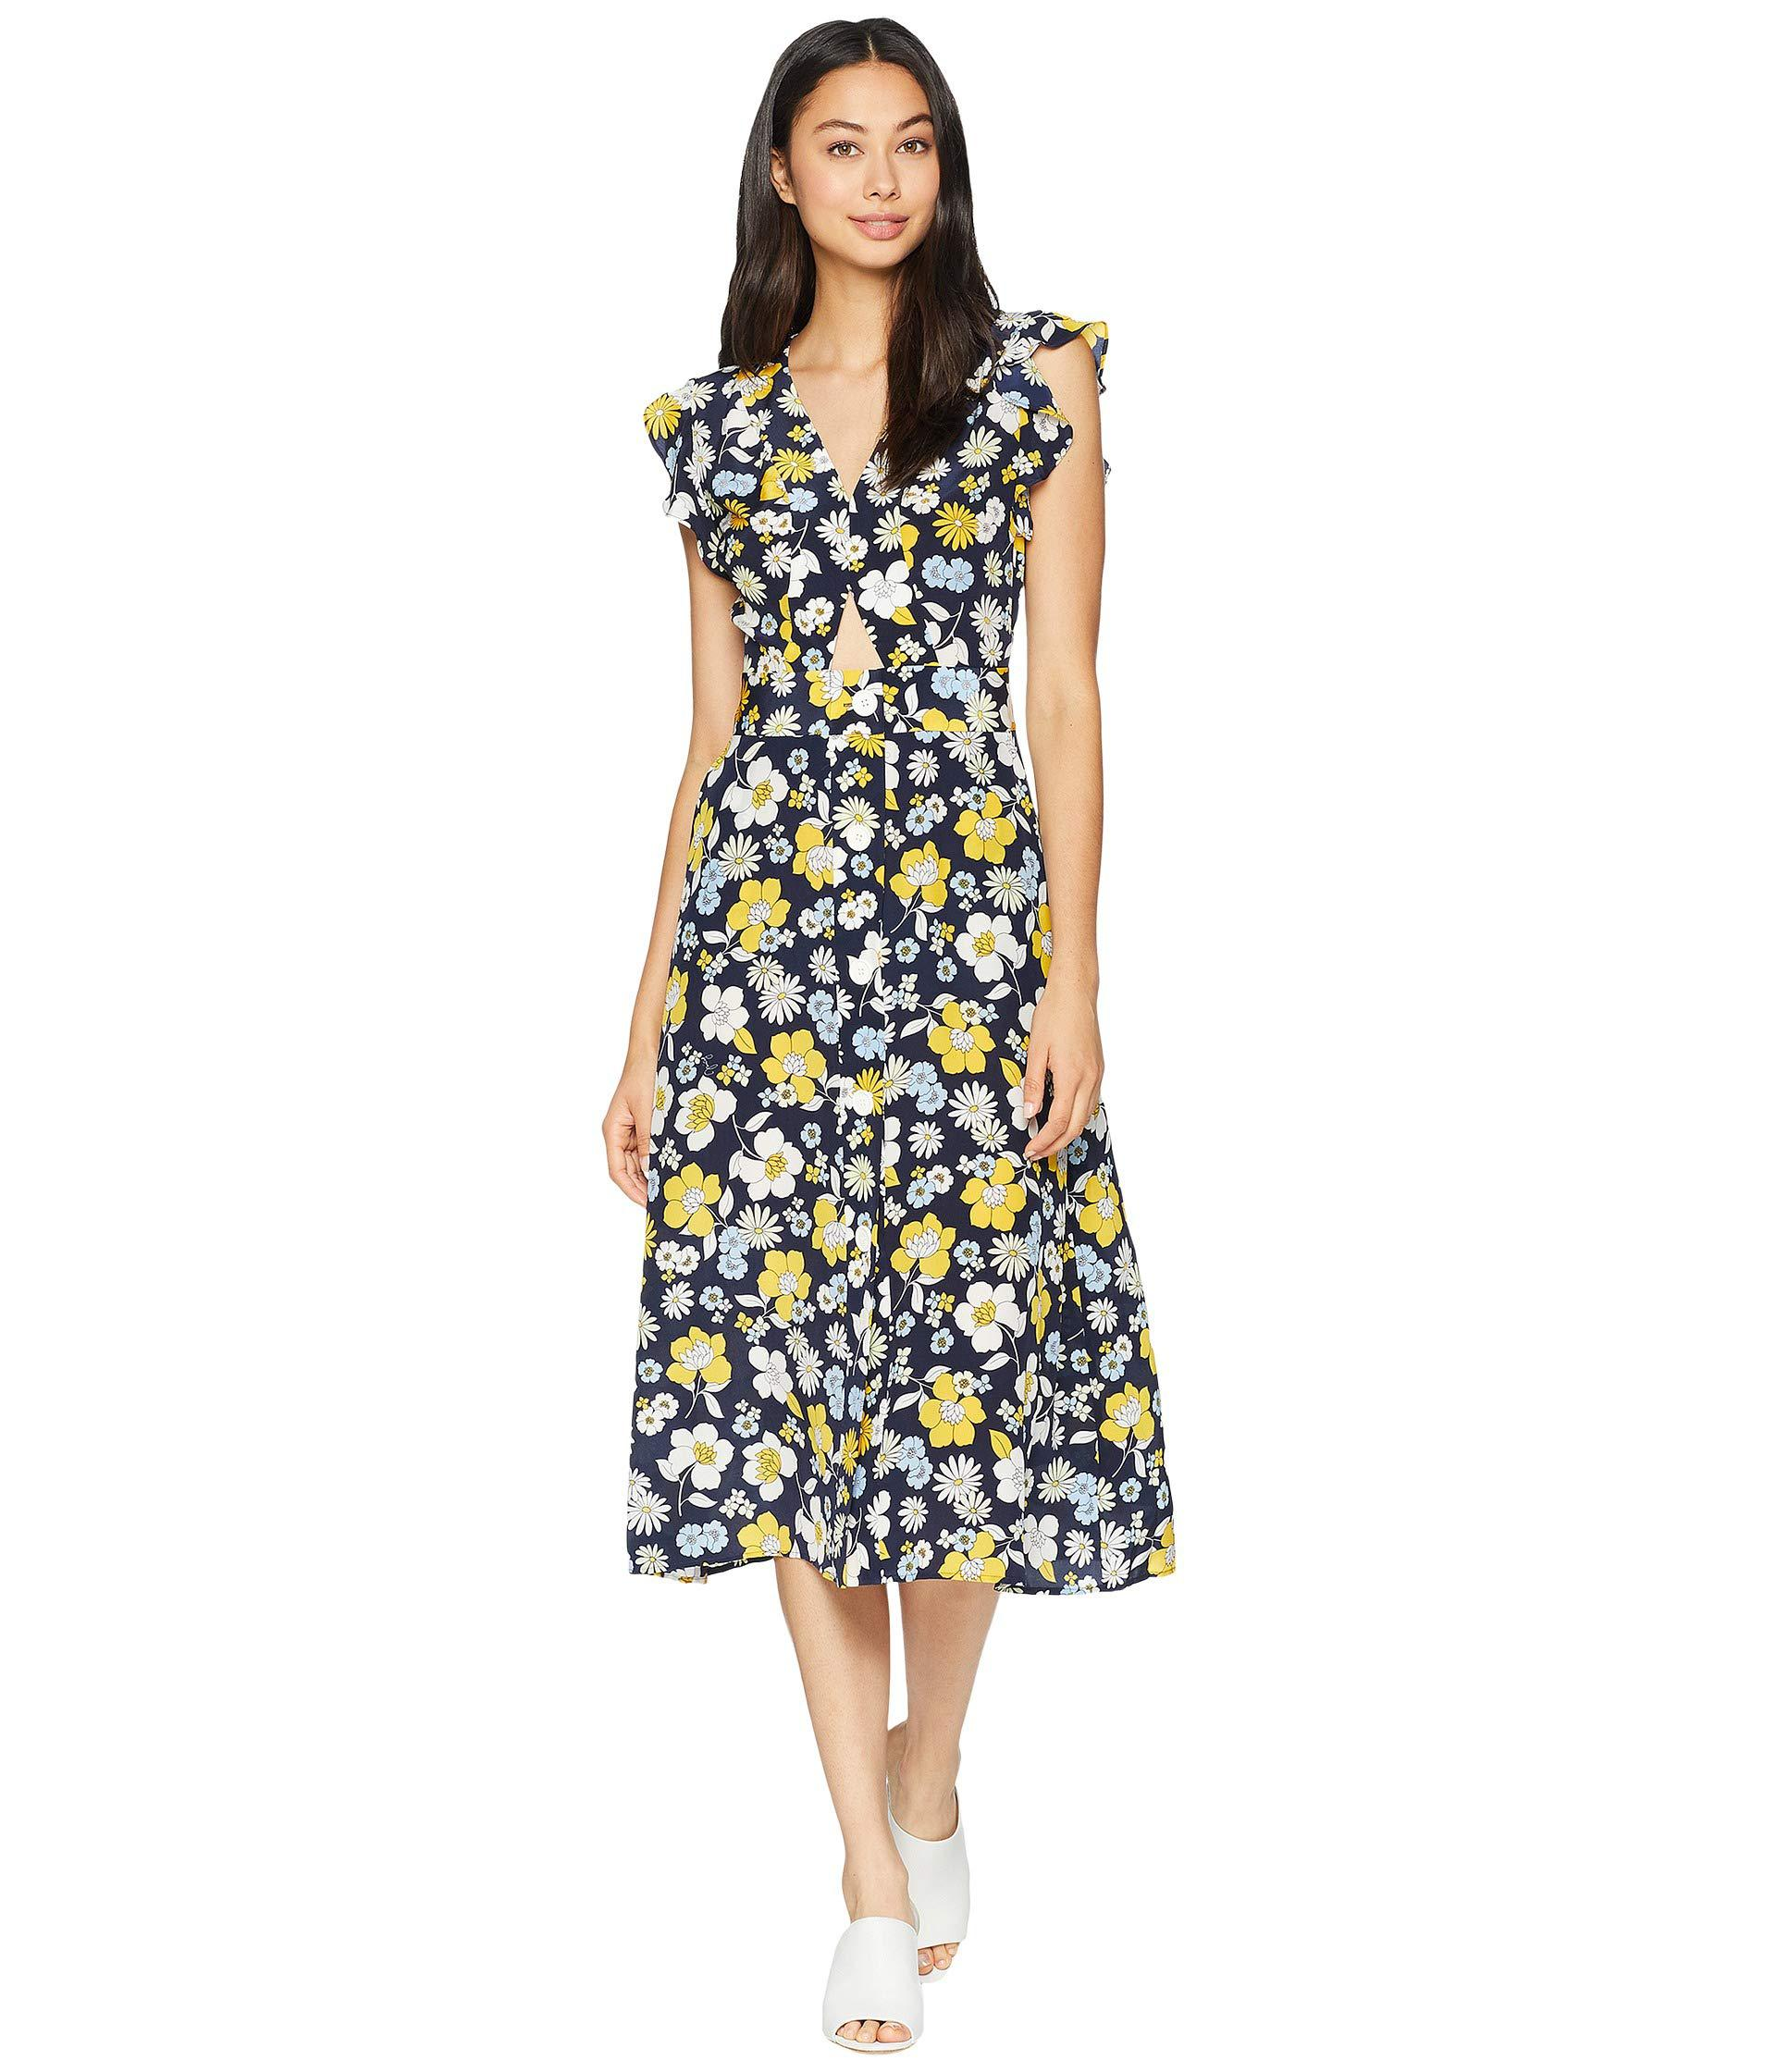 b84b369af03a Juicy Couture - Multicolor Silk Garden Floral Midi Dress - Lyst. View  fullscreen